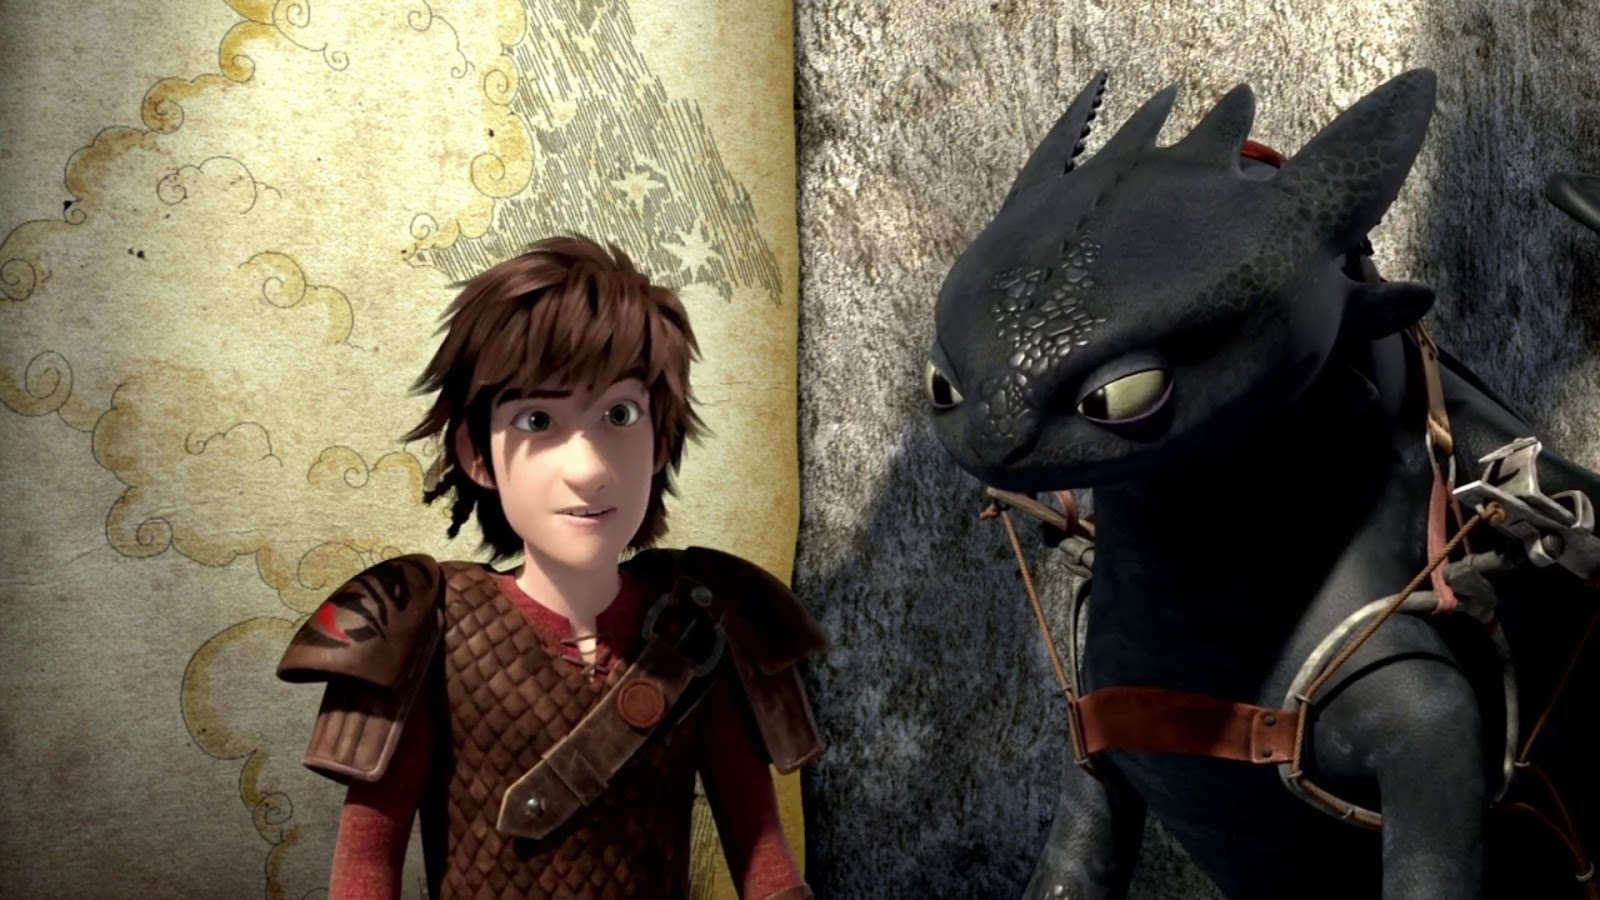 Image hiccup toothless mapg how to train your dragon wiki hiccup toothless mapg ccuart Images